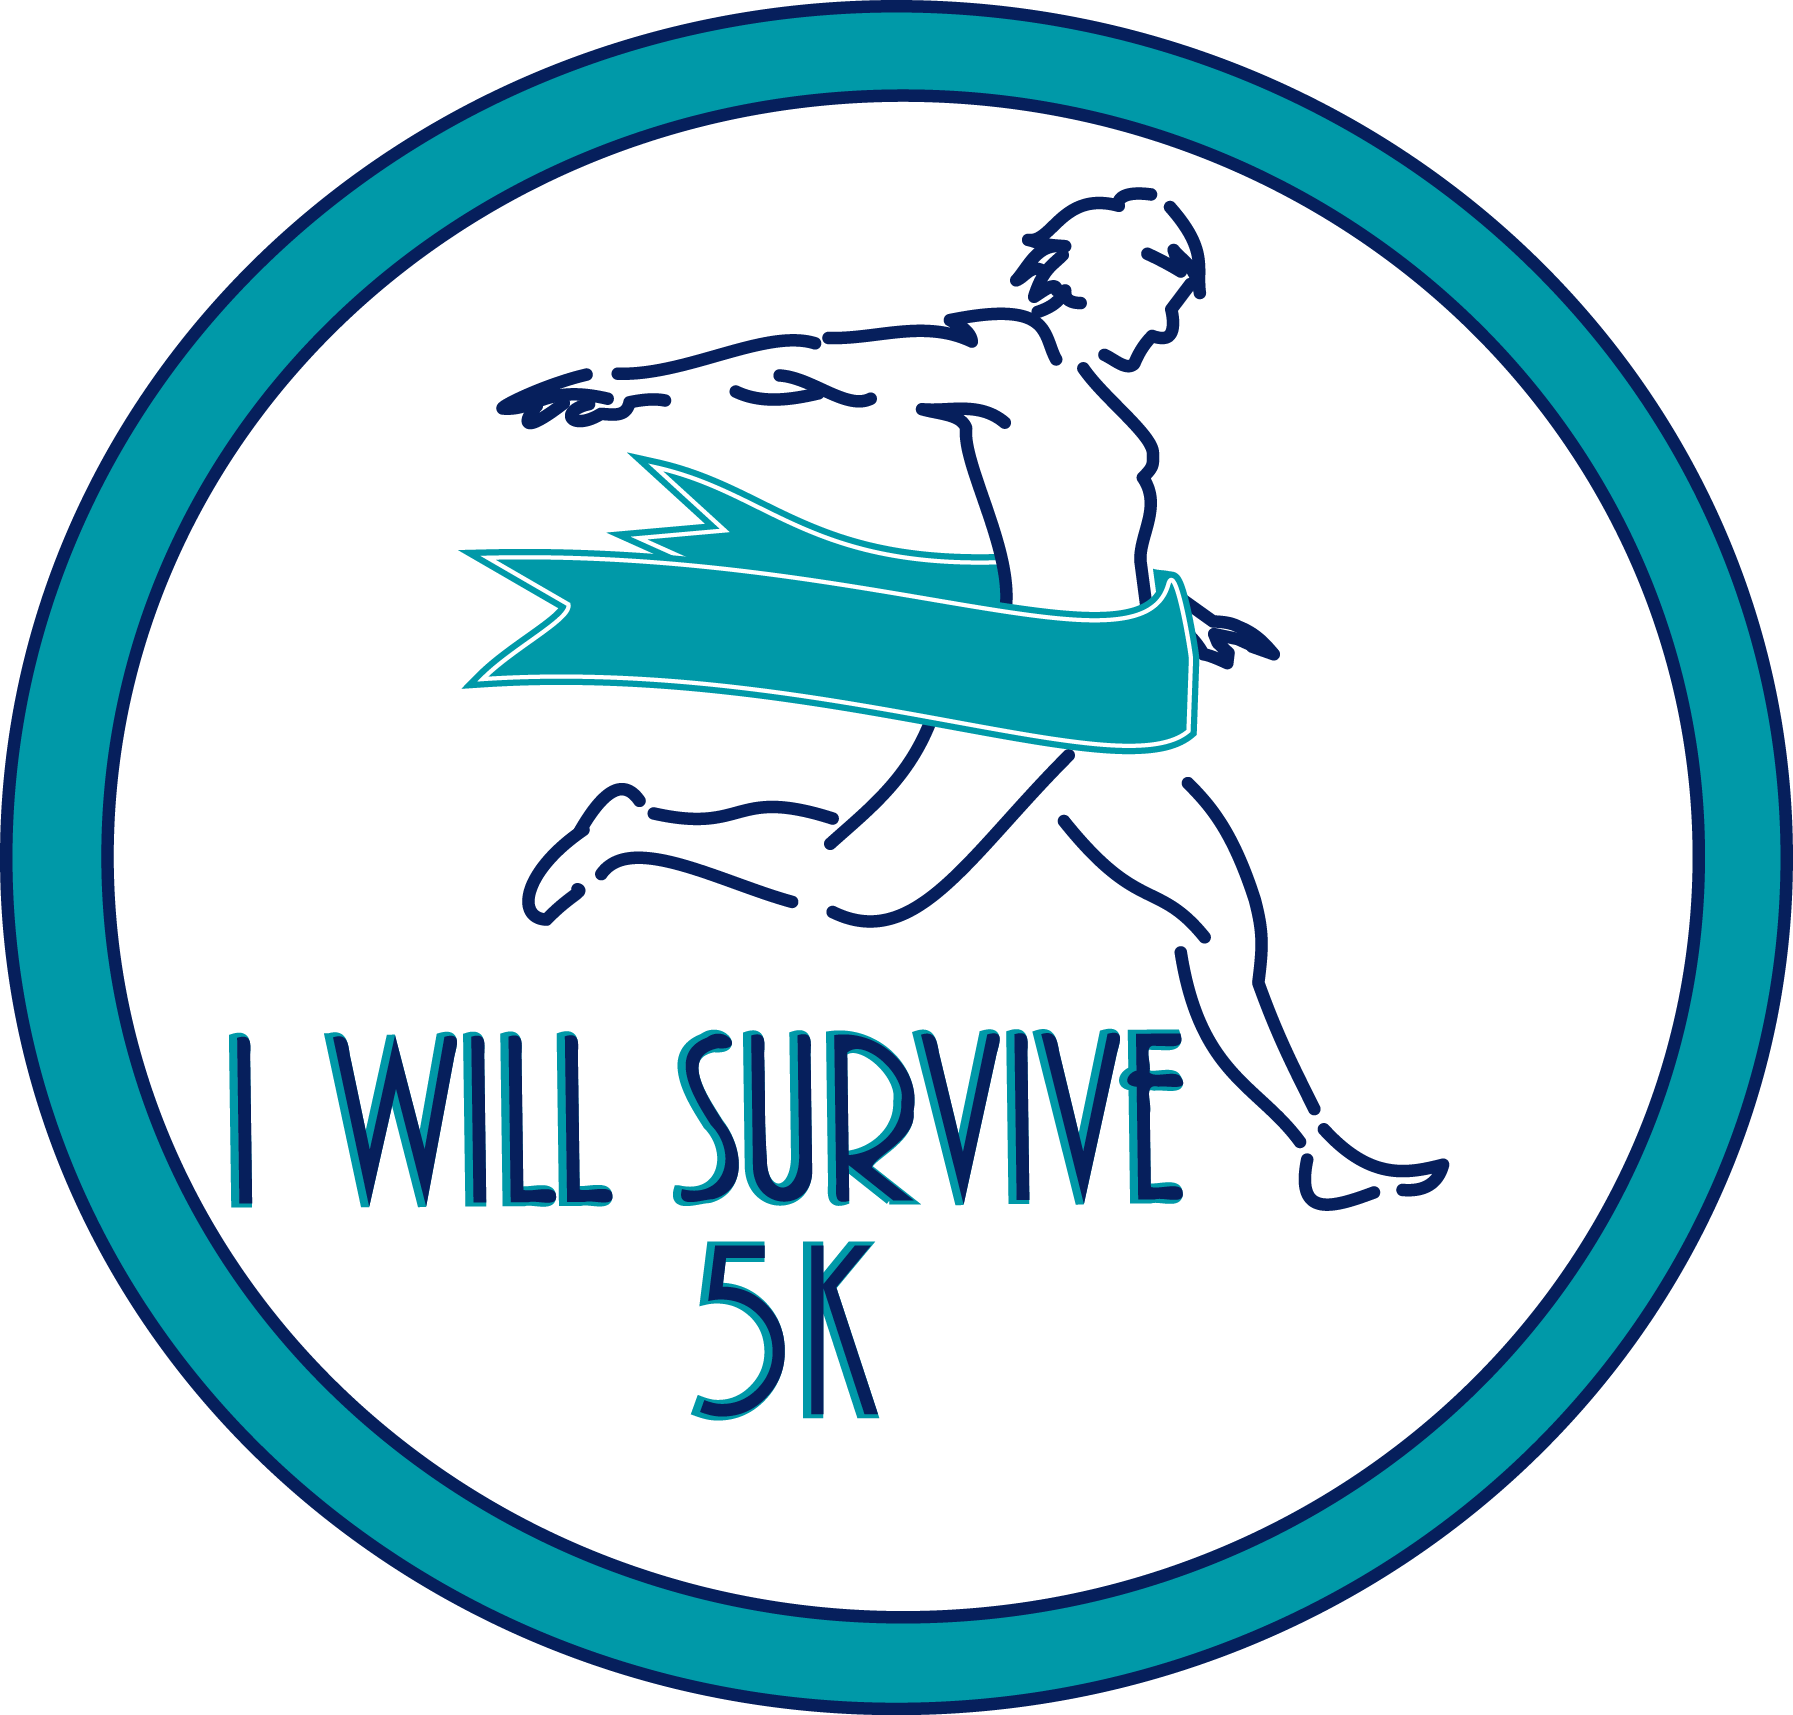 i will survive circle 5k logo color Sans Year